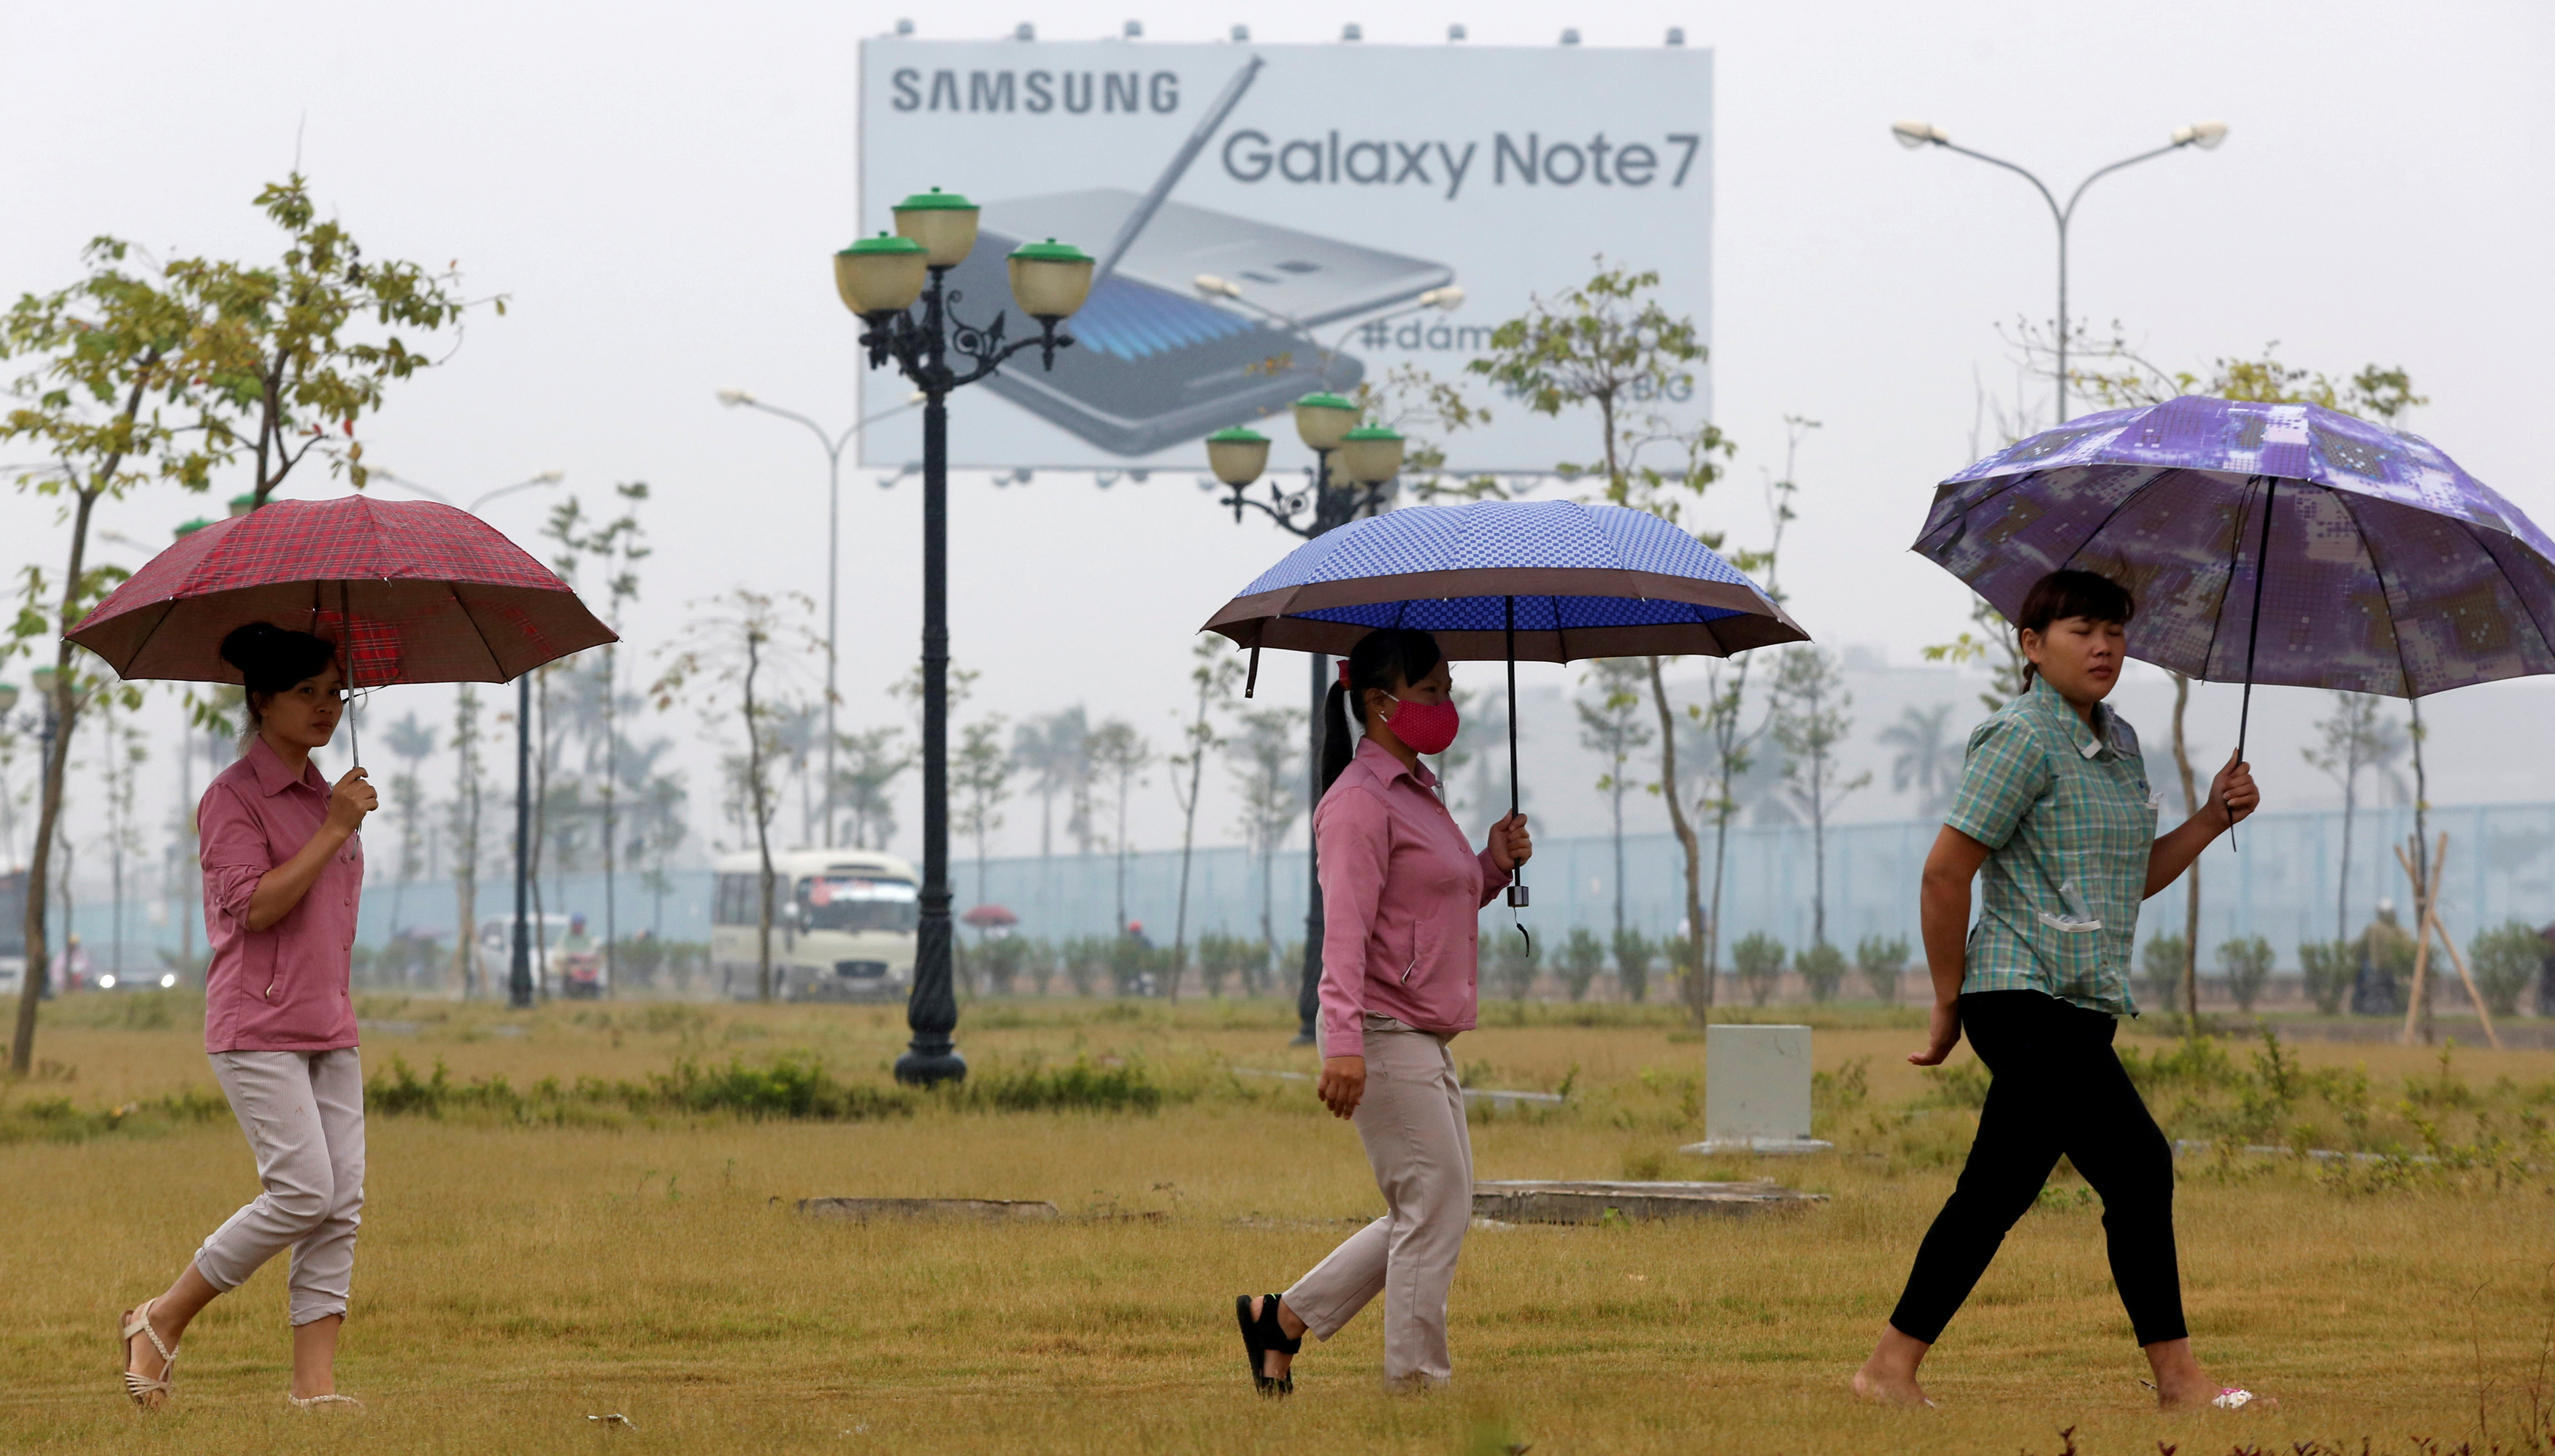 Employees pass a billboard advertisement for the Samsung Galaxy Note 7 on the way to work at the Samsung factory in Thai Nguyen province, north of Hanoi, Vietnam October 13, 2016. REUTERS/Kham